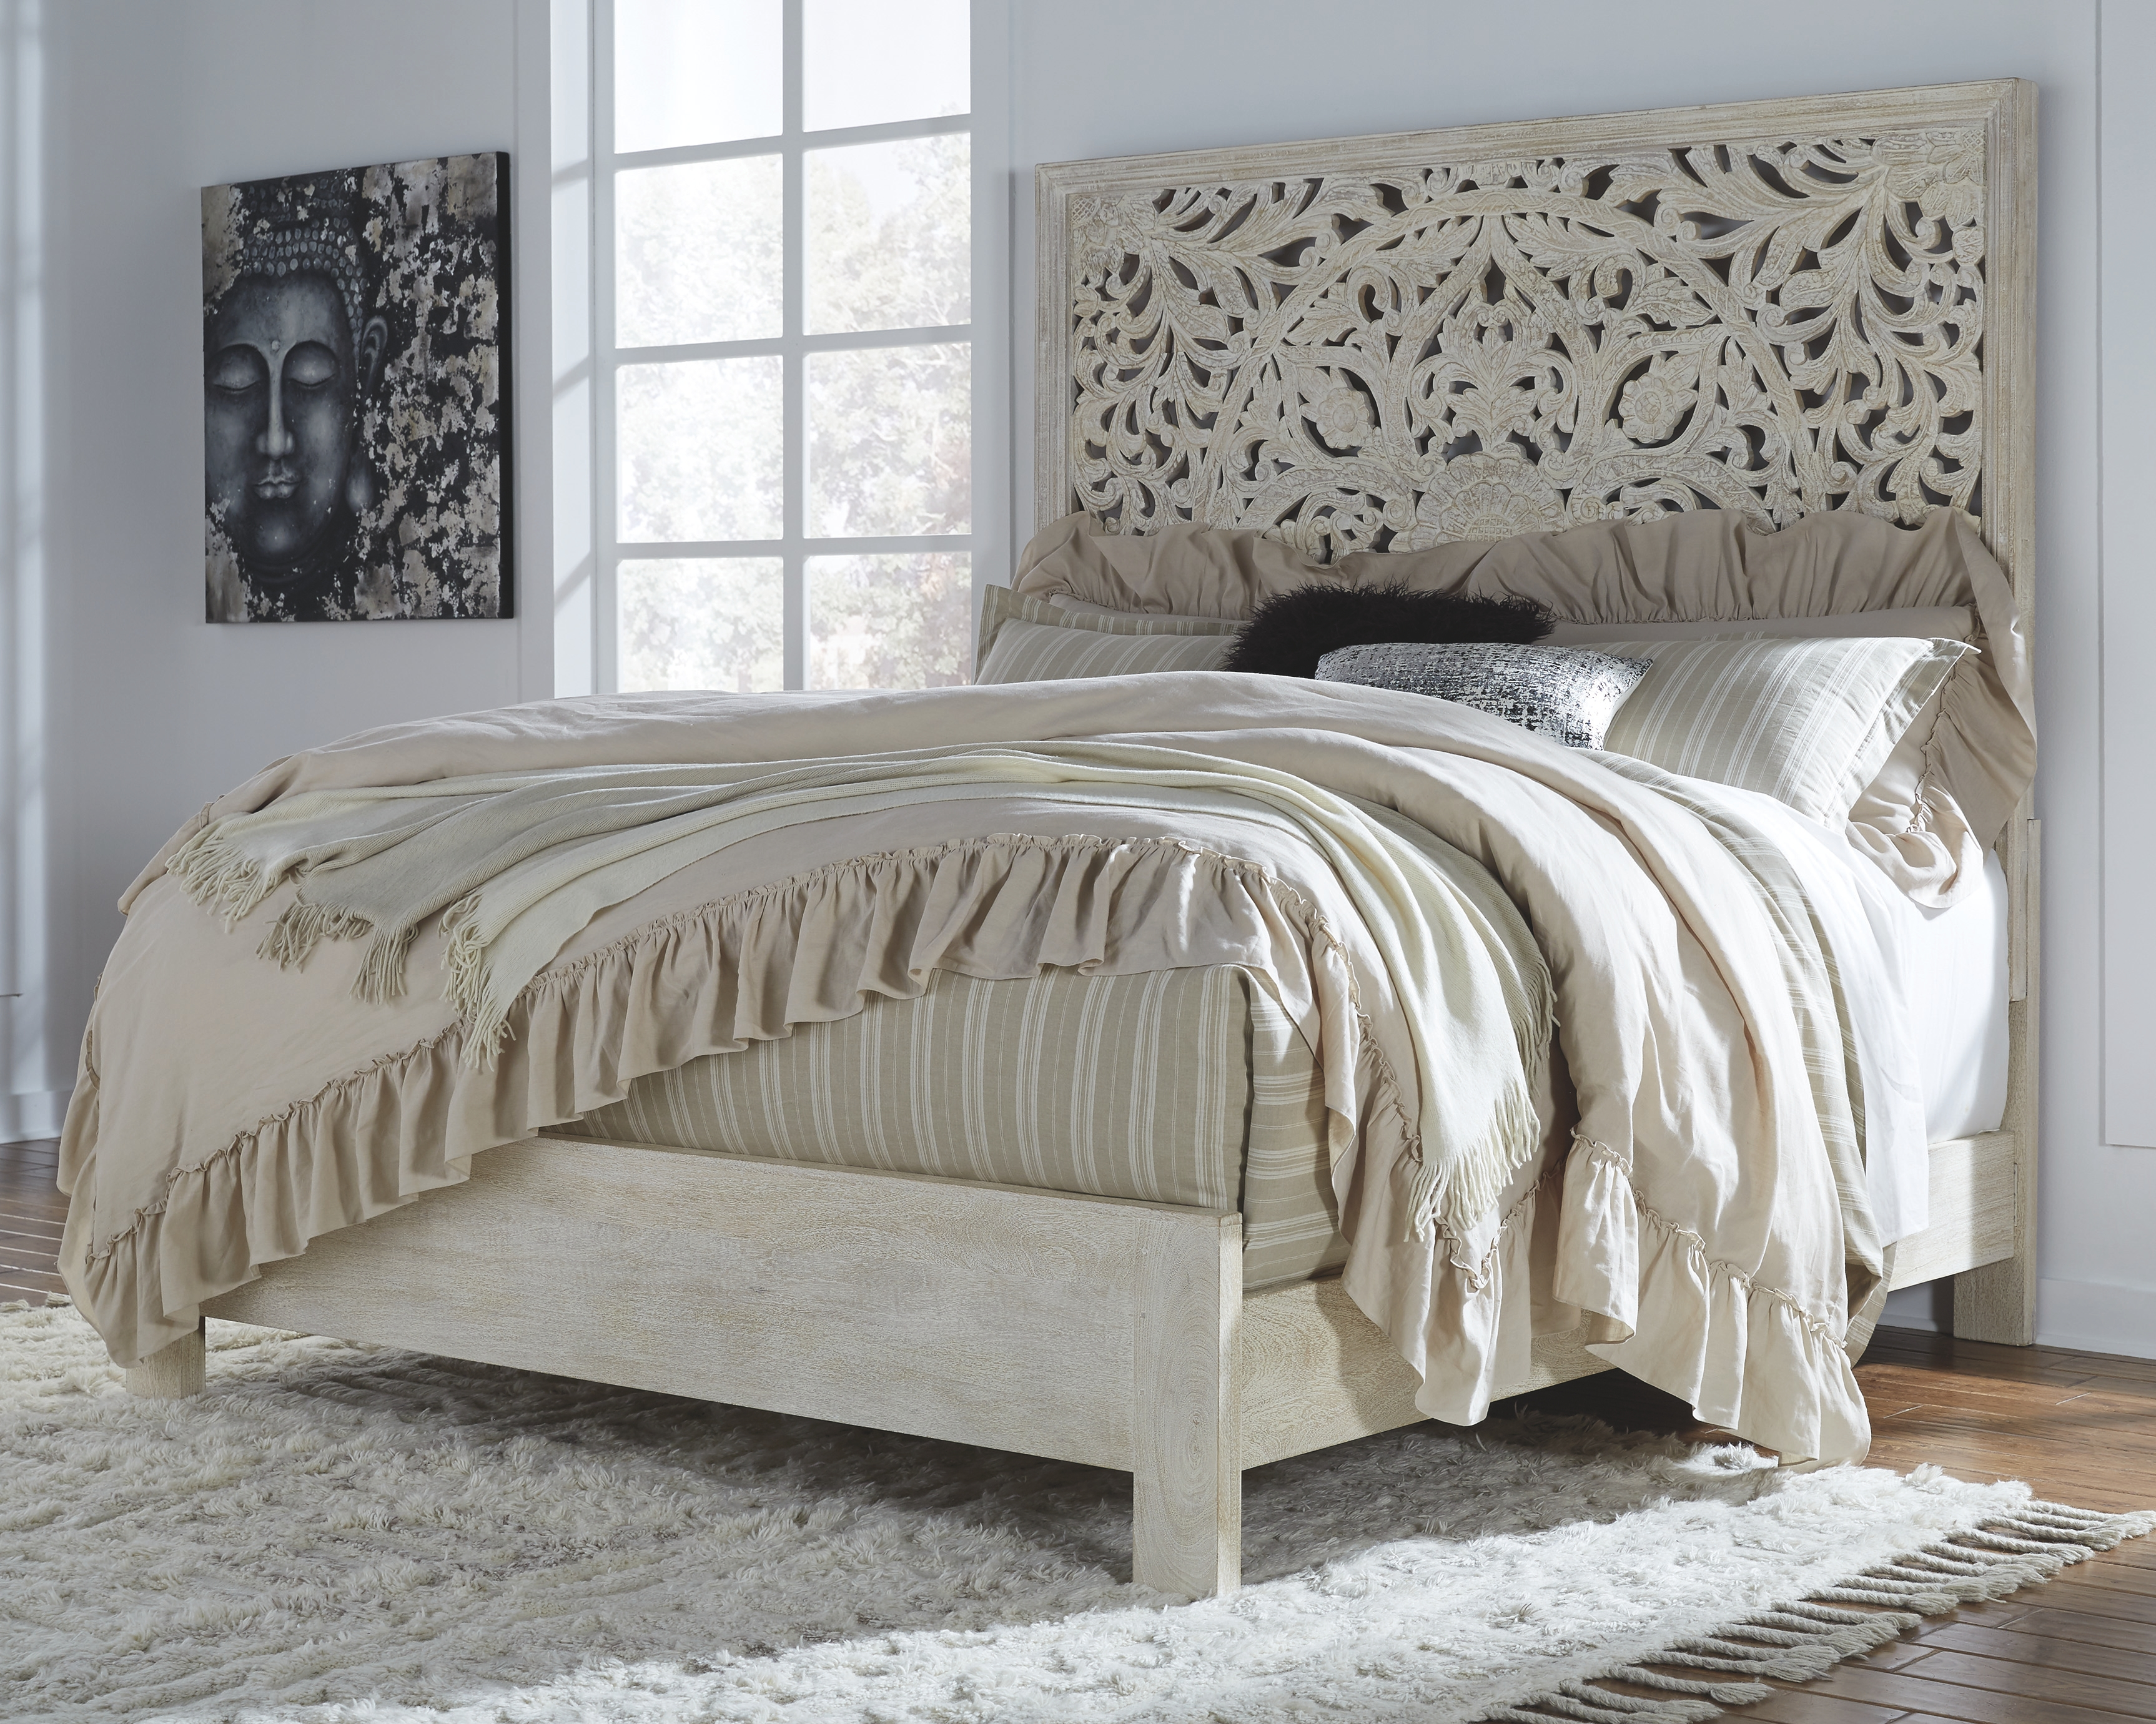 bantori king panel bed white products carved beds panel bed bed rh in pinterest com